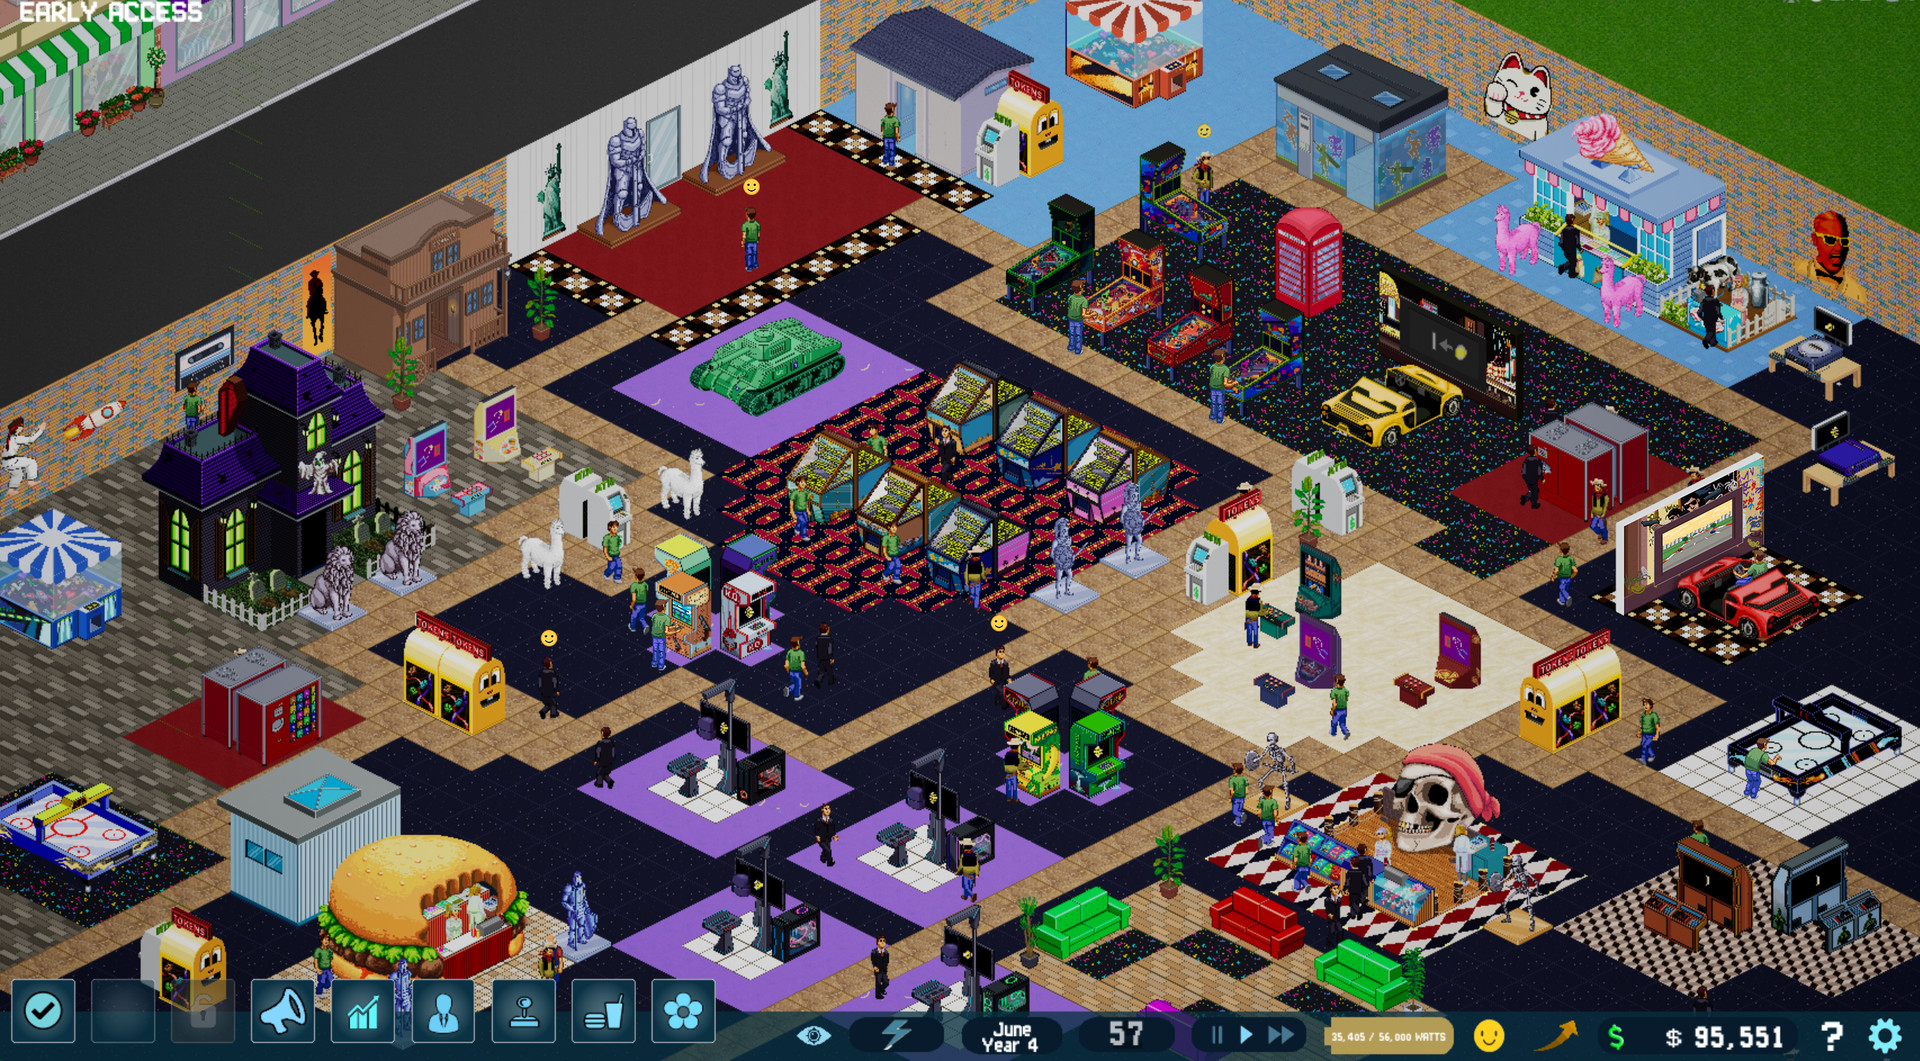 Find the best gaming PC for Arcade Tycoon